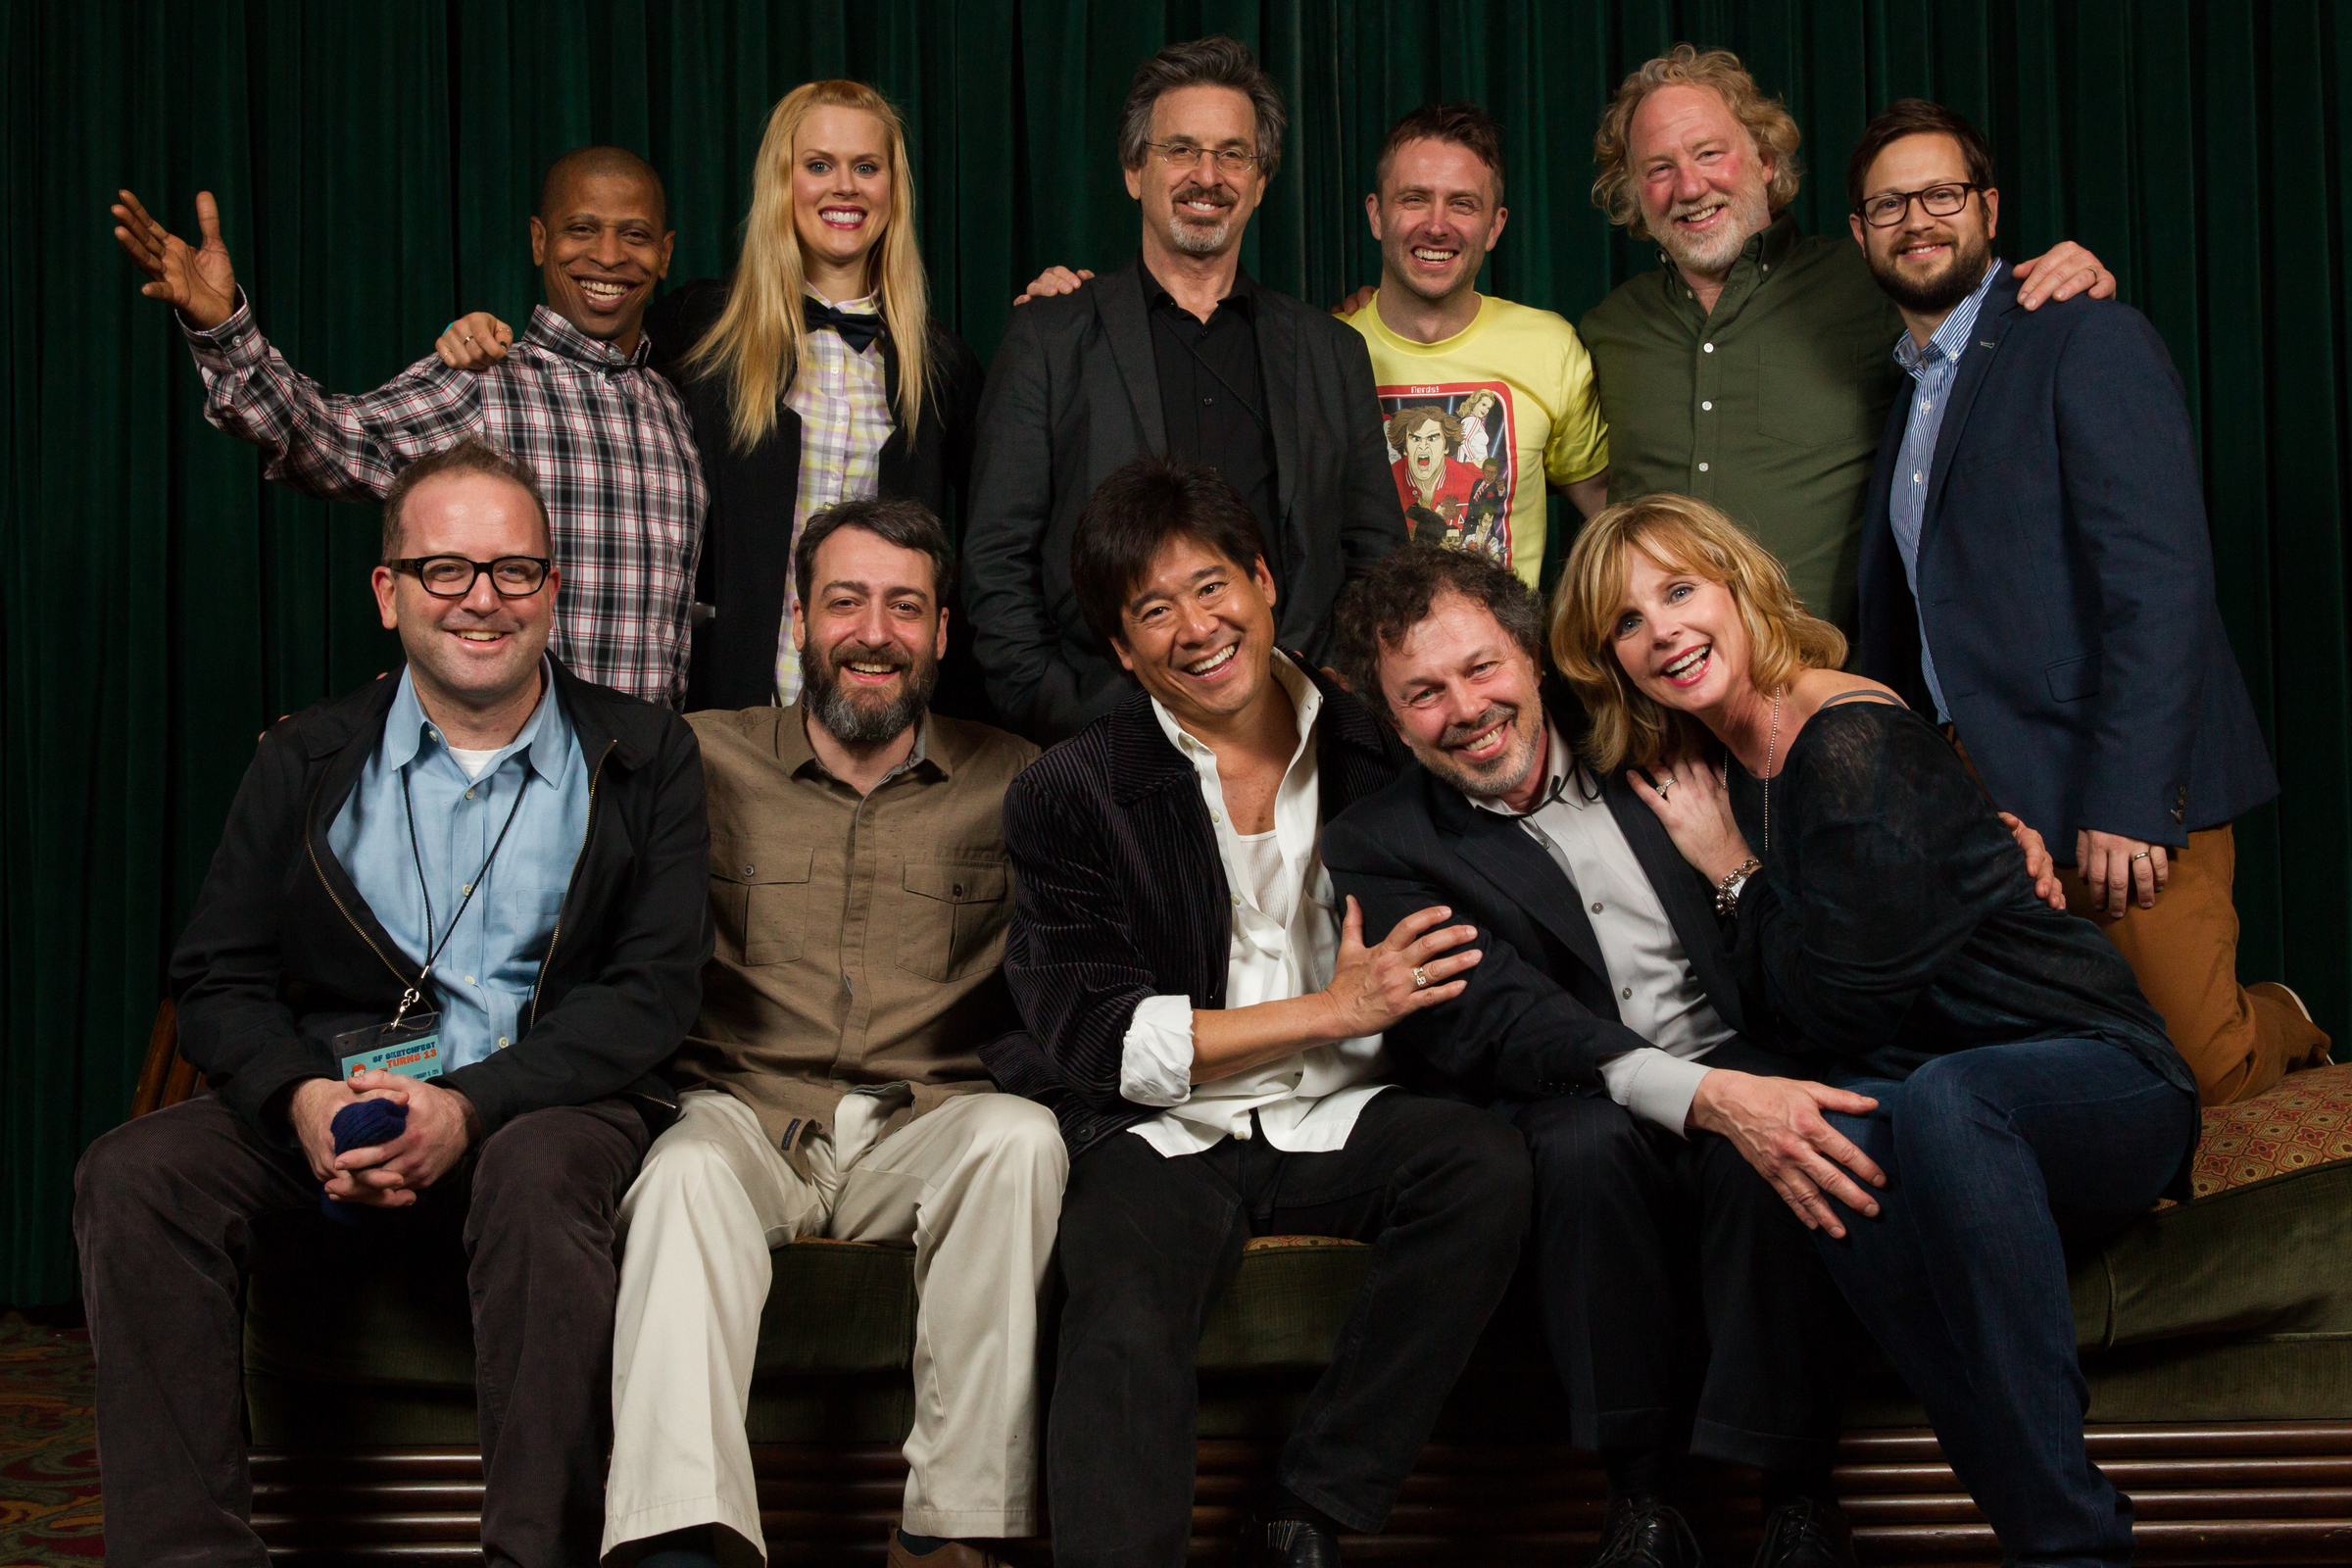 Revenge of the Nerds cast and Chris Hardwick. Photo by Jakub Mosur.